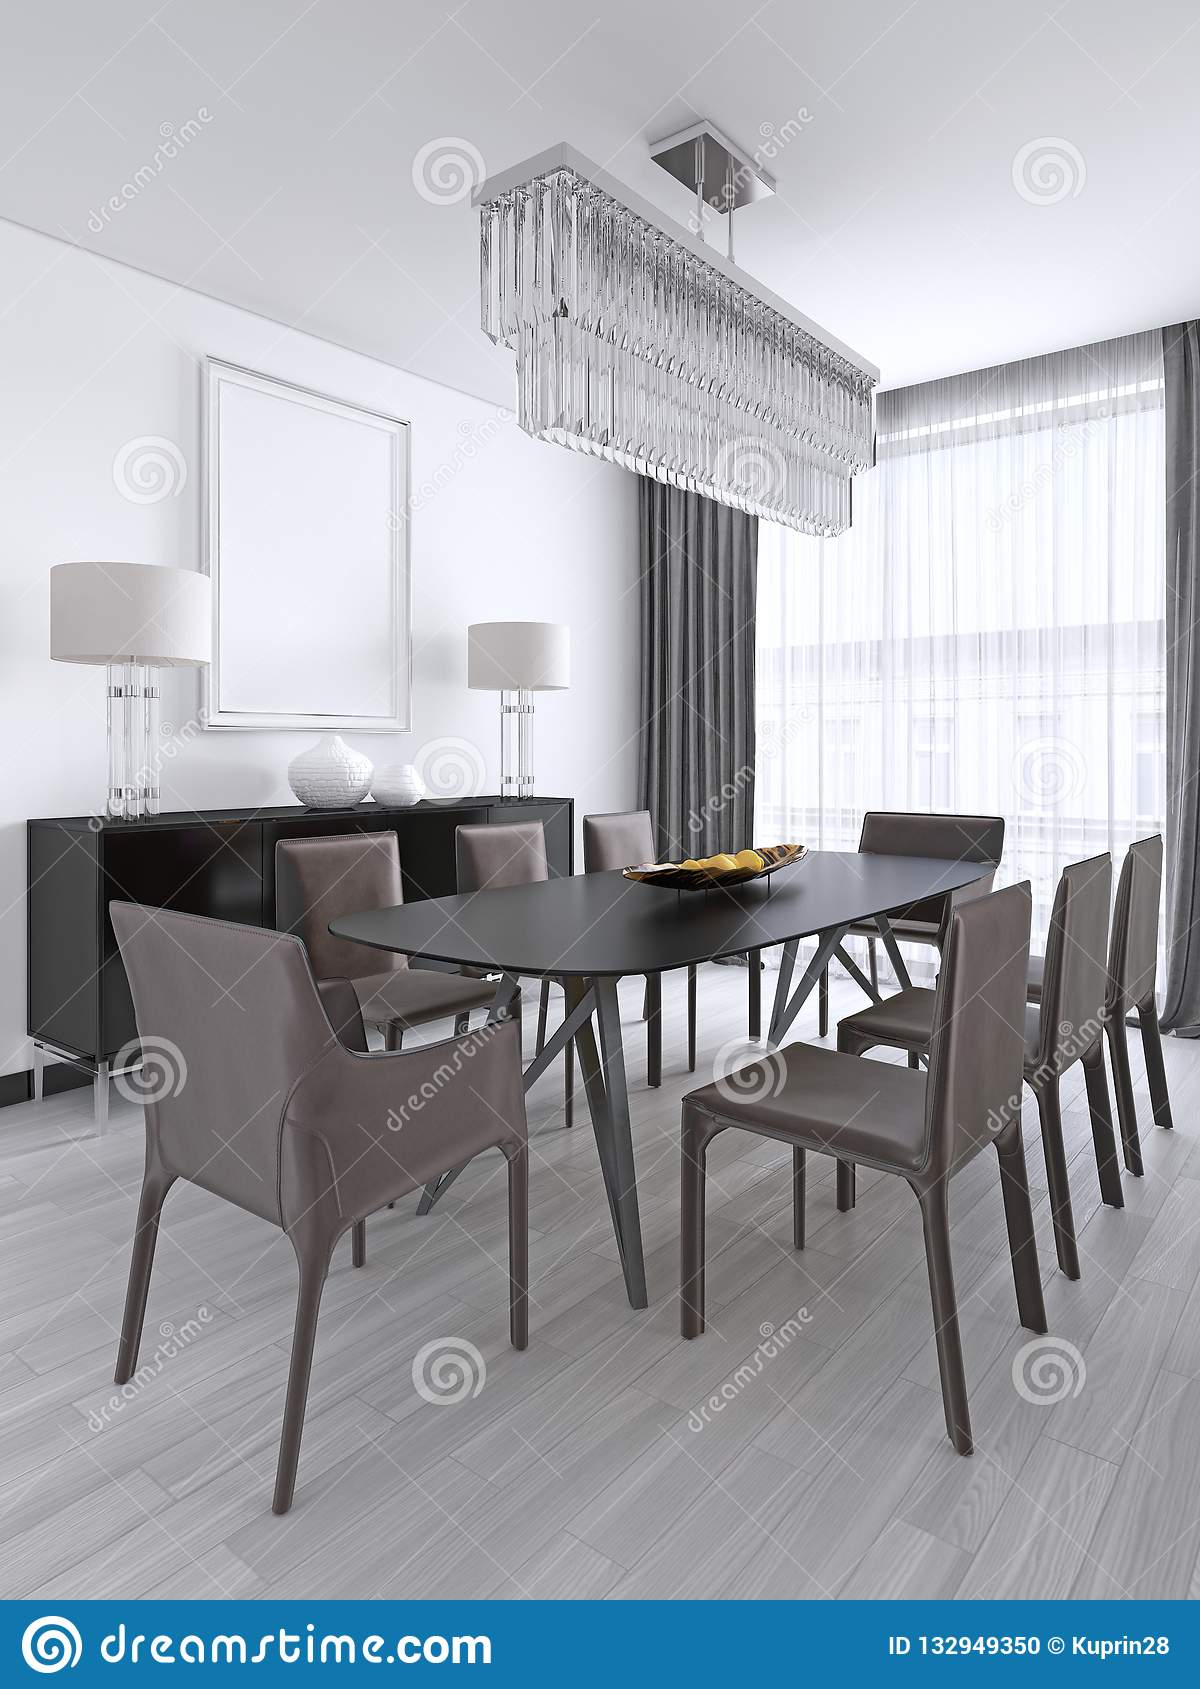 Dining Table In A Studio Apartment In The Scandinavian Style Stock Illustration Illustration Of Estate Floor 132949350